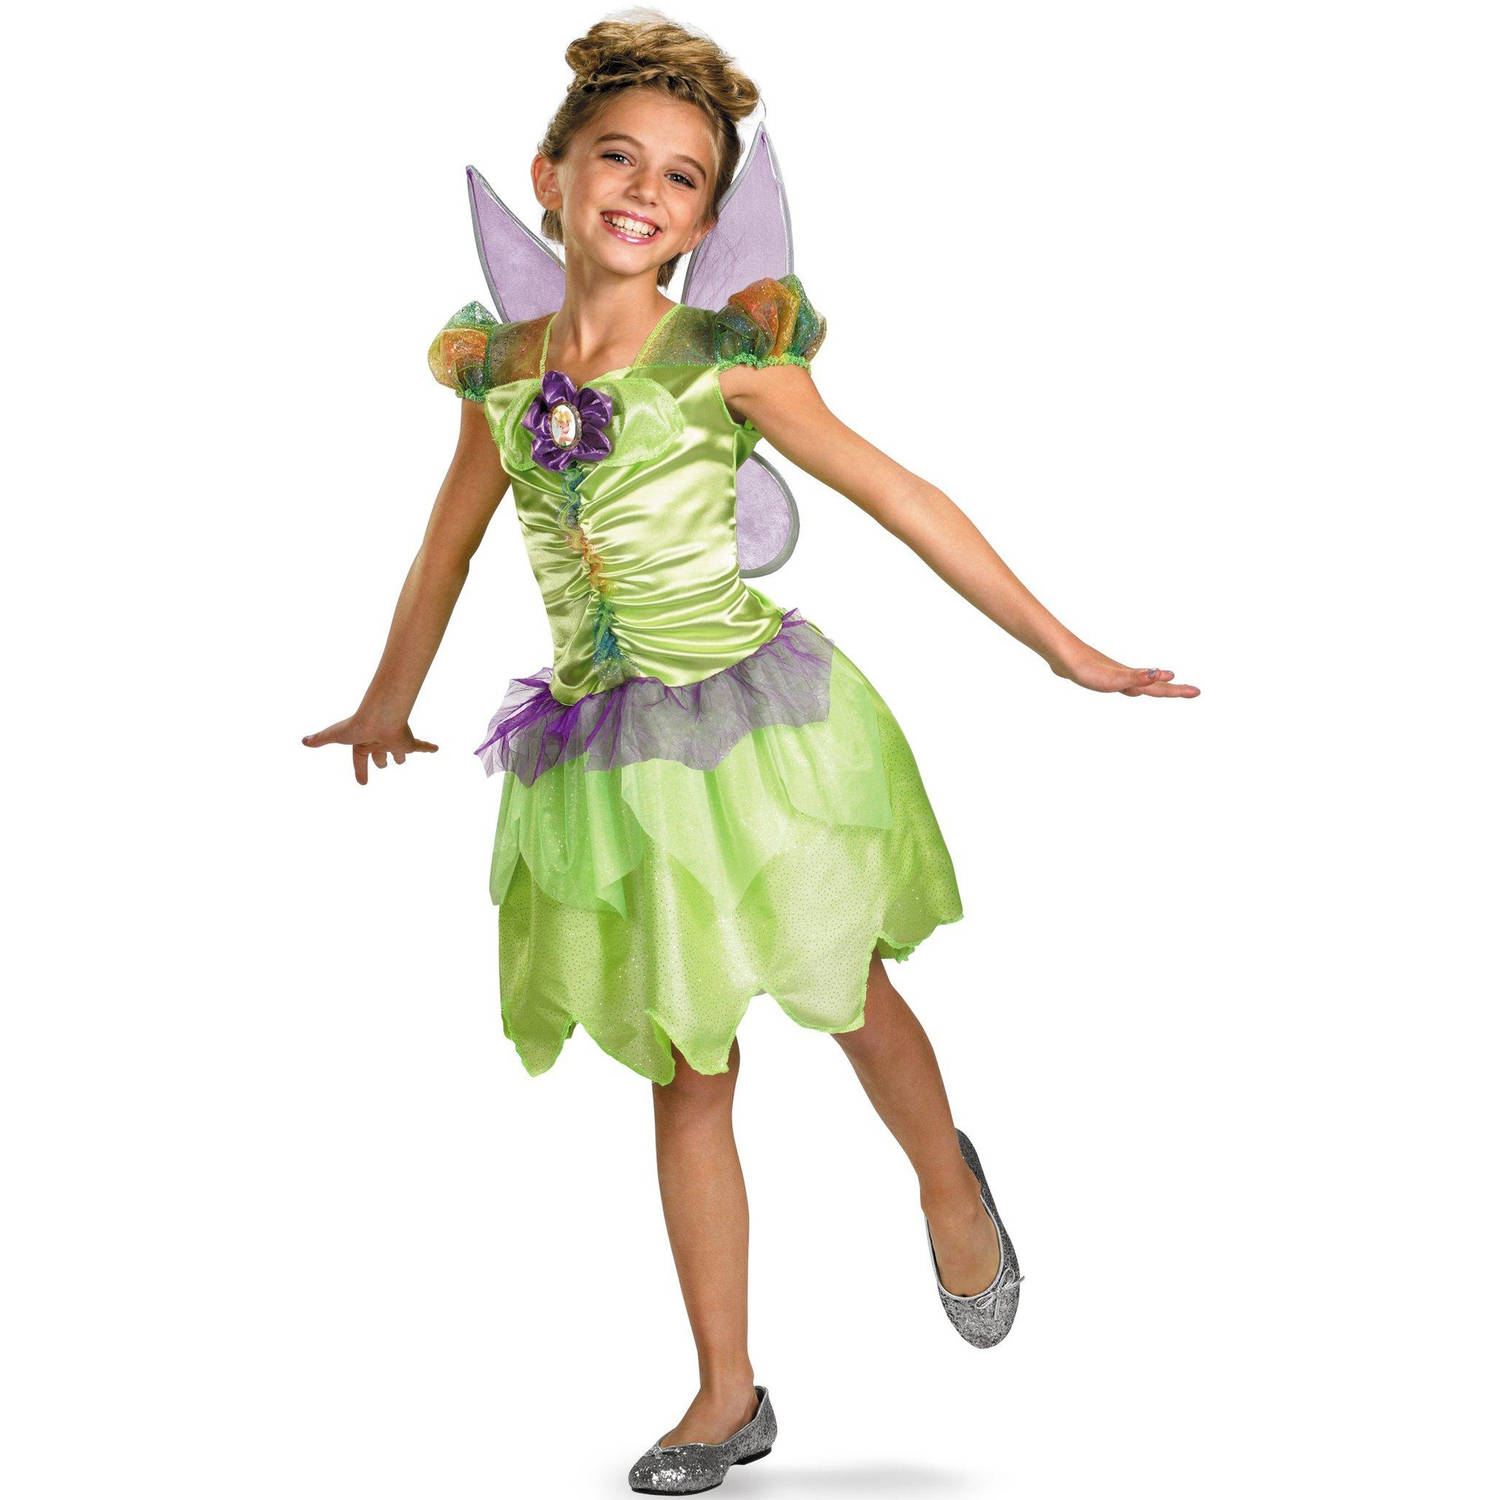 Disney Fairies Tinker Bell Rainbow Classic Toddler Halloween Costume, 3T-4T